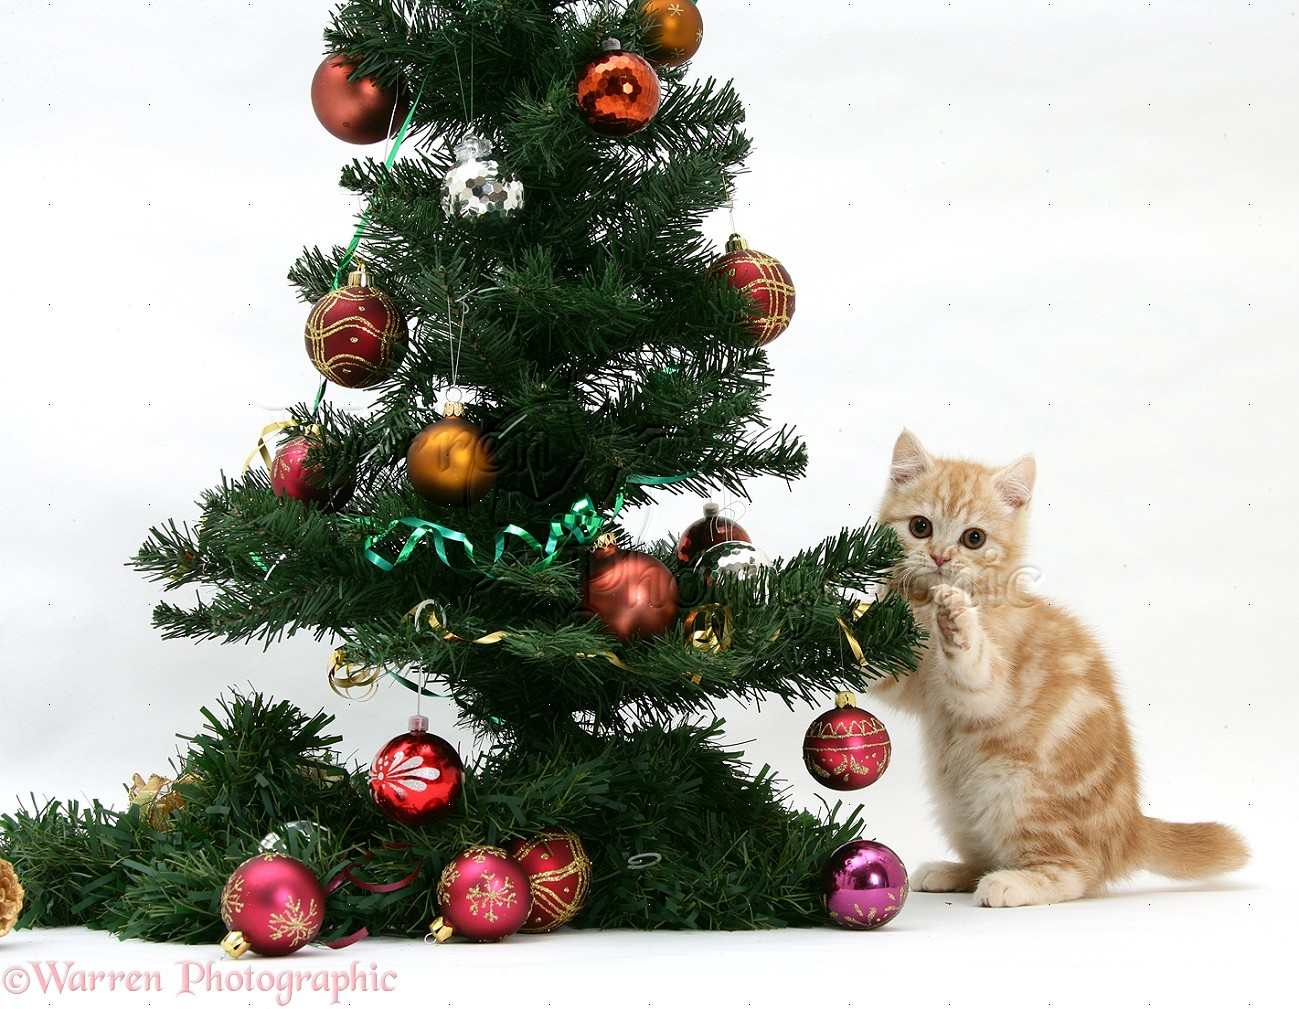 WP18105 Ginger kitten playing with a Christmas tree.